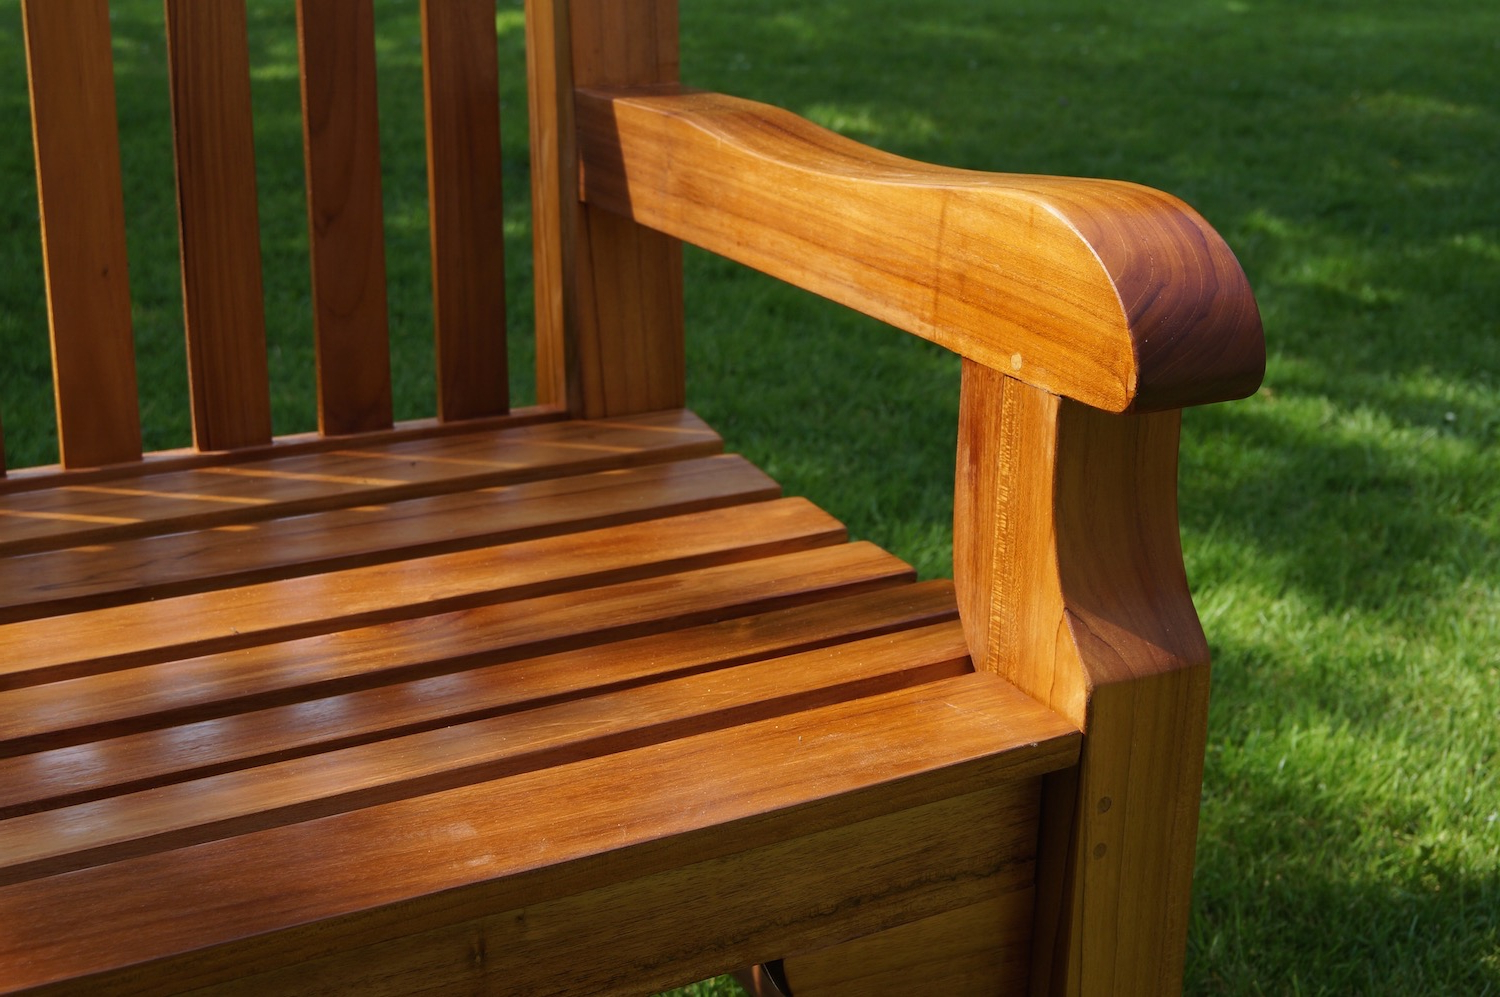 Most Popular Wooden Garden Bench For Wood Garden Benches (View 11 of 30)